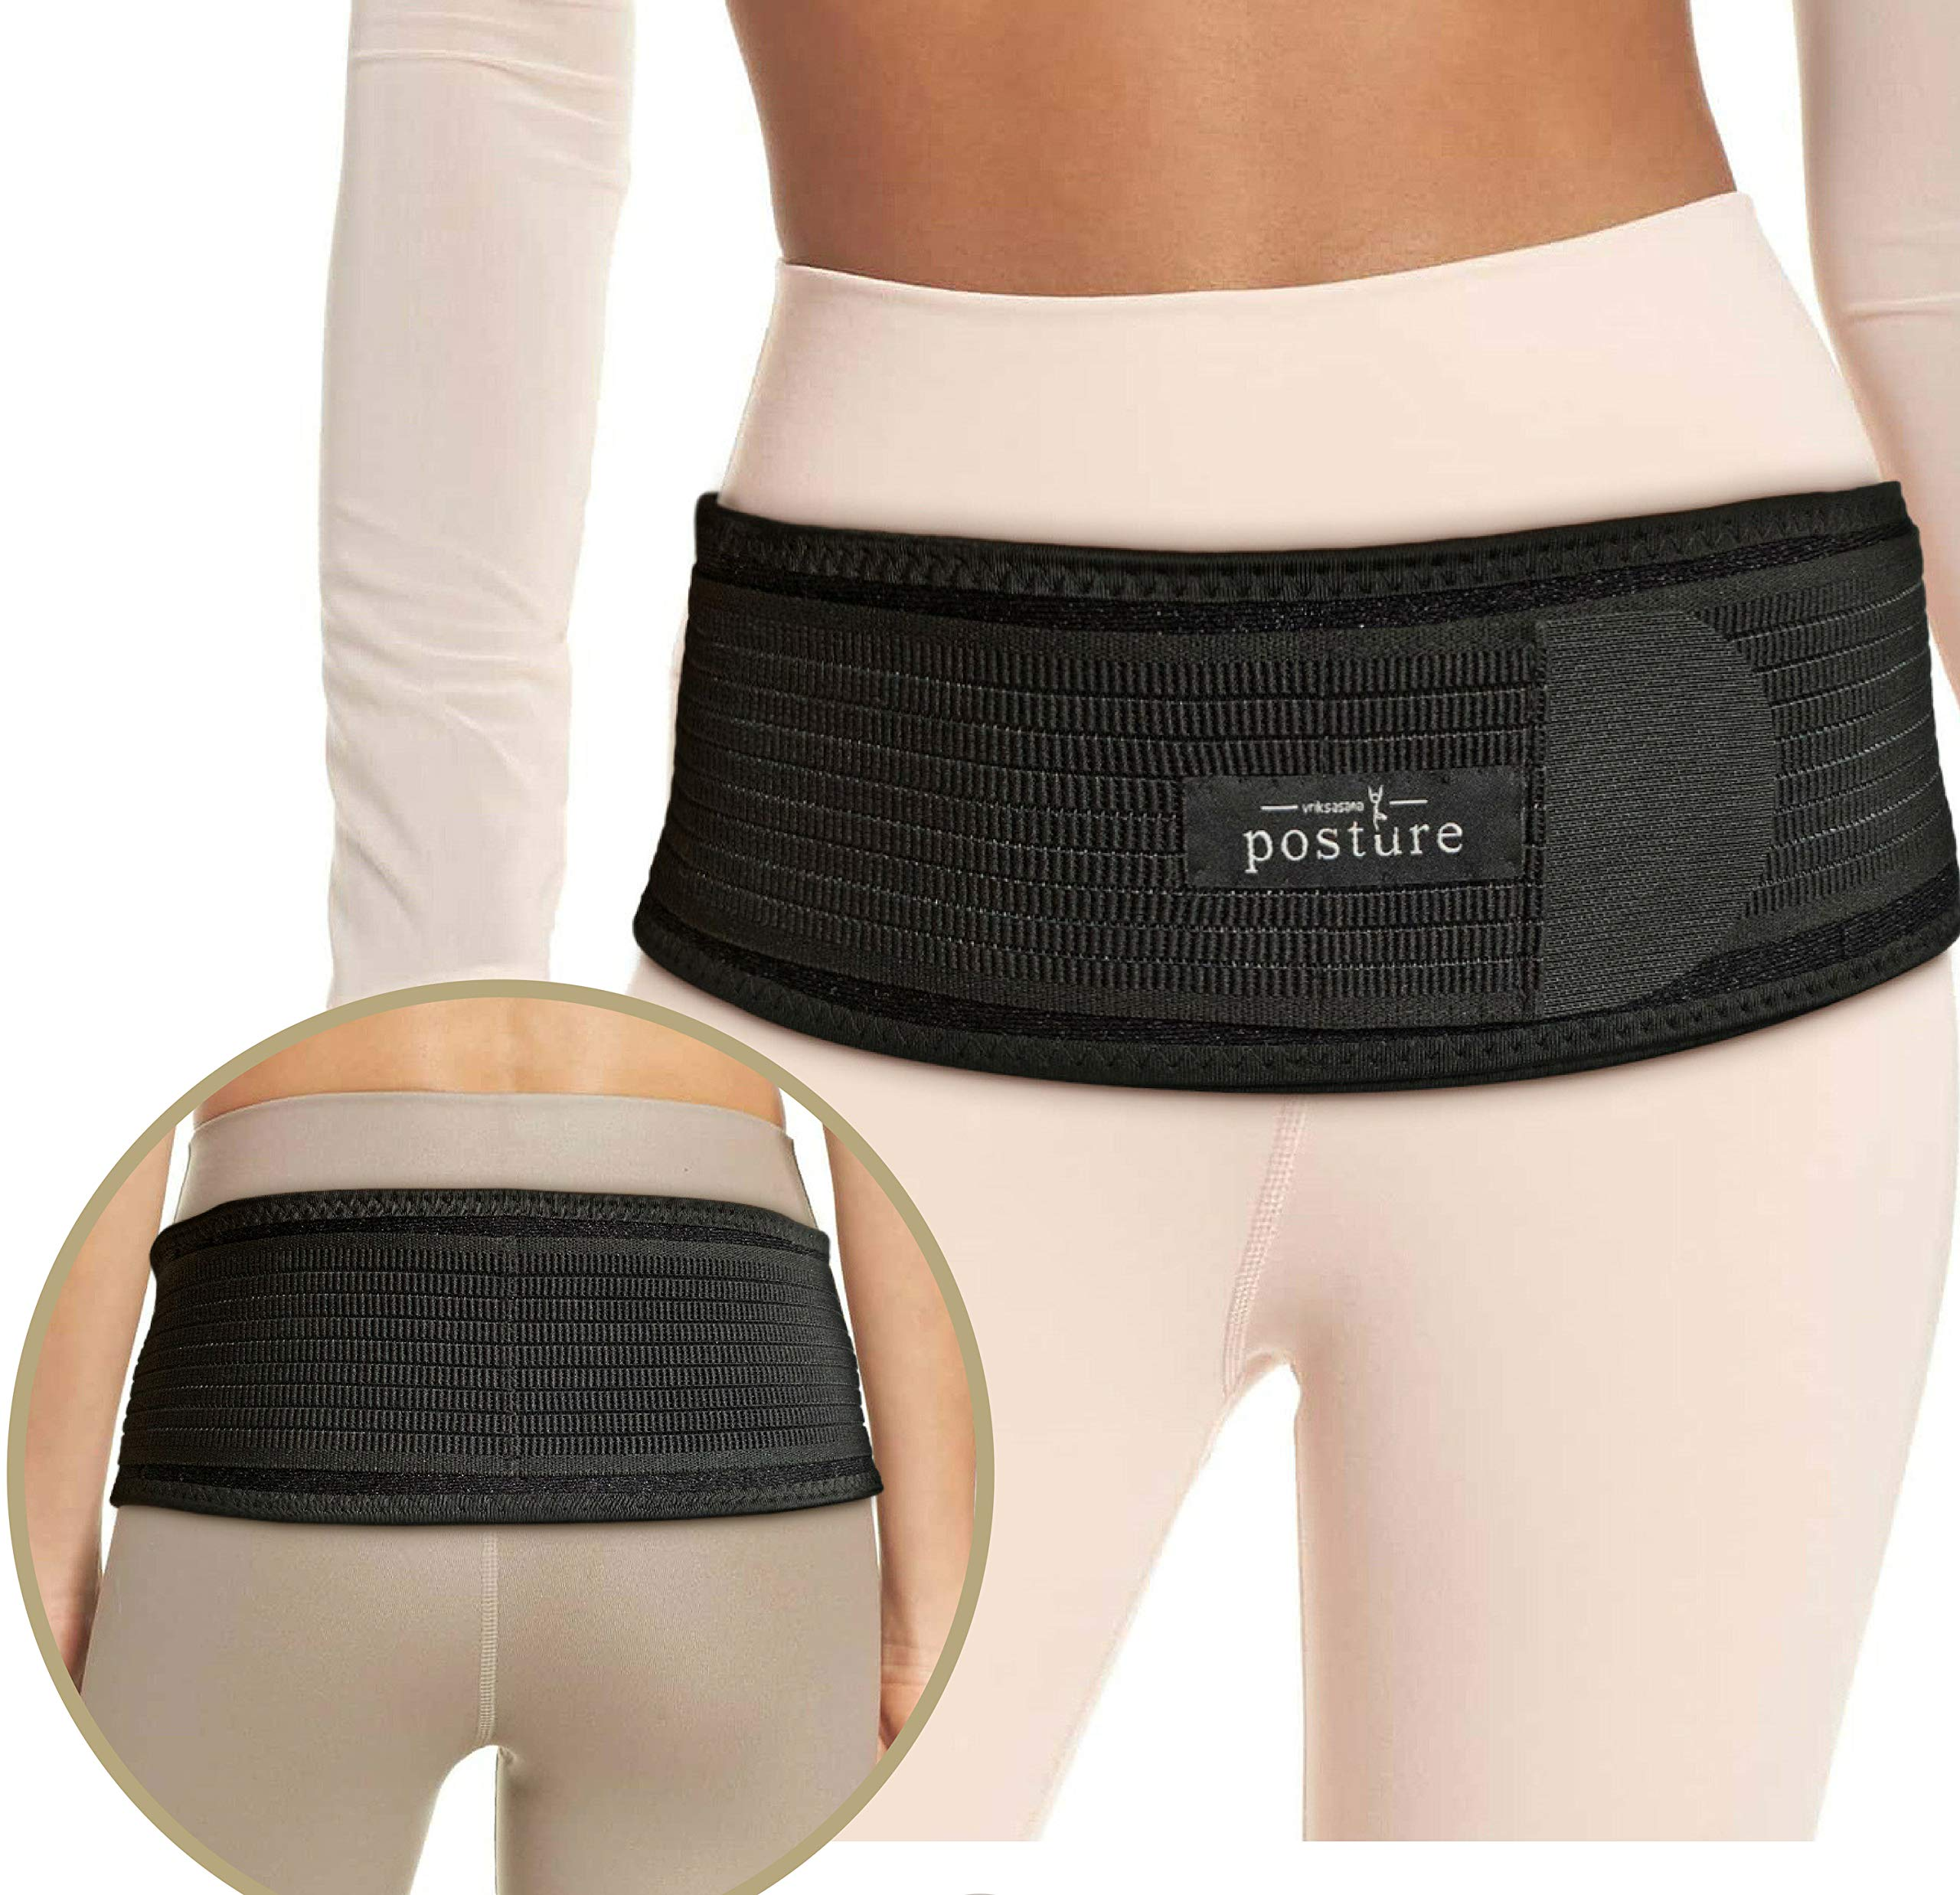 Original Sacroiliac Hip Belt for Women and Men That Alleviate Sciatic, Pelvic, Lower Back and Leg Pain, Stabilize SI Joint | Trochanter Belt | Anti-Slip and Pilling-Resistant (Black, Regular)